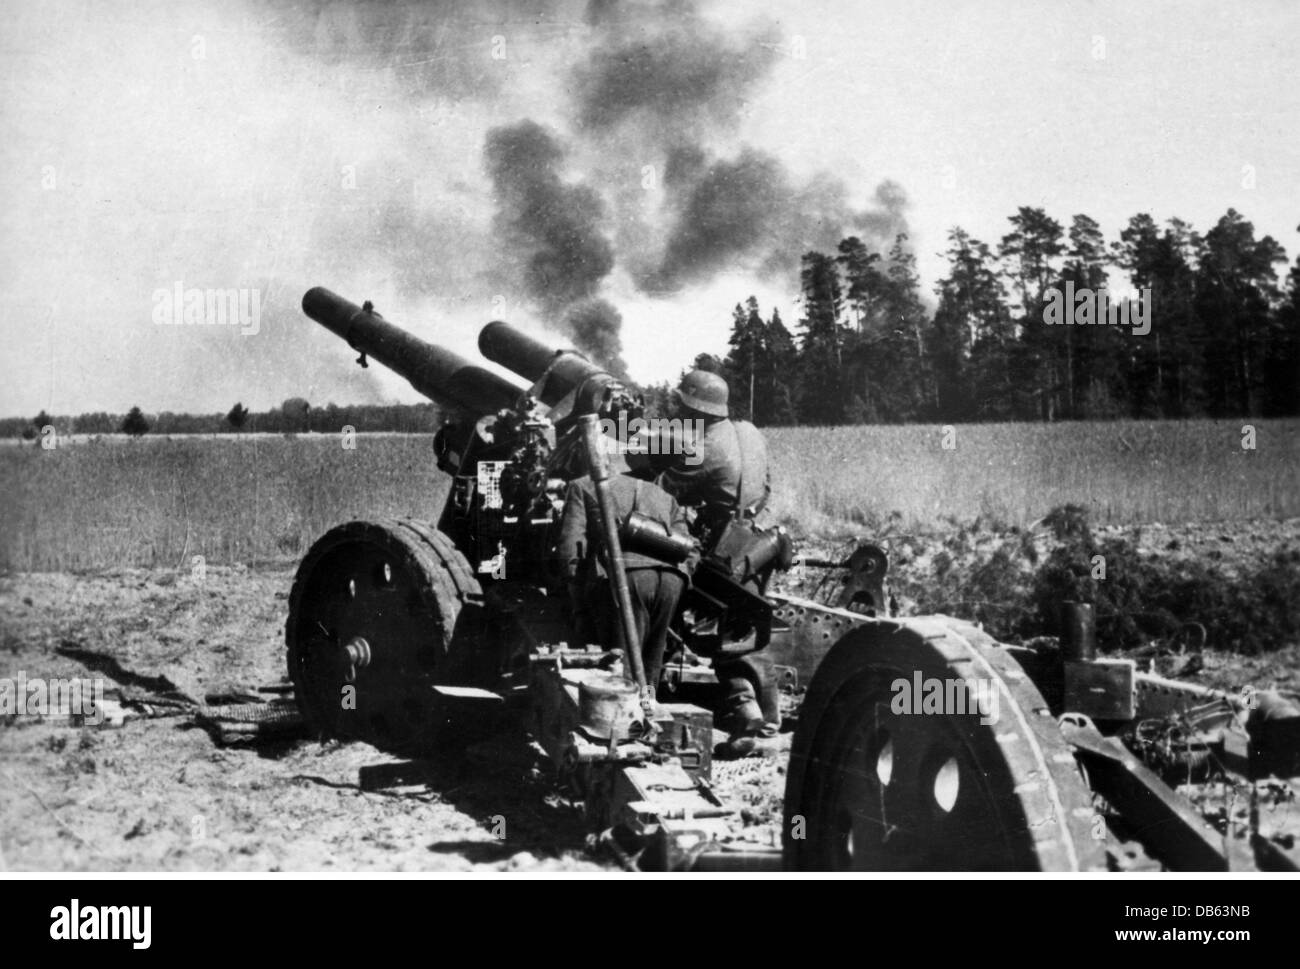 account of the operation barbarossa Operation barbarossa was the name given to nazi germany's invasion of russia on june 22nd 1941 barbarossa the largest military attack of world war two and was to have appalling consequences for the russian people.